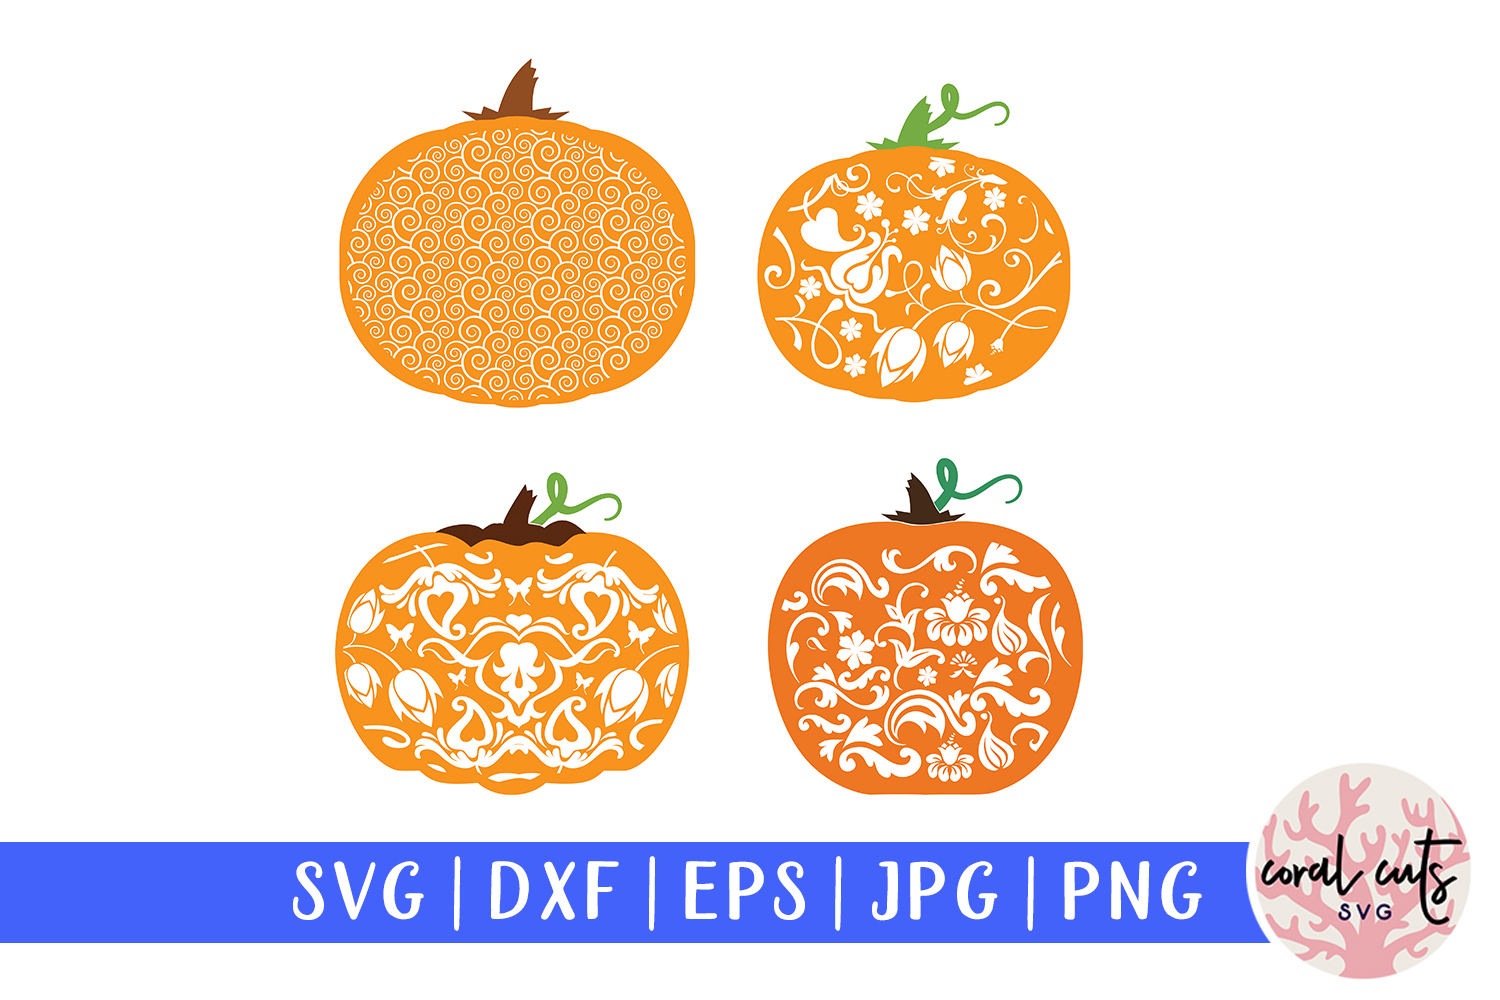 Download Free Decorative Pumpkin Graphic By Coralcutssvg Creative Fabrica for Cricut Explore, Silhouette and other cutting machines.